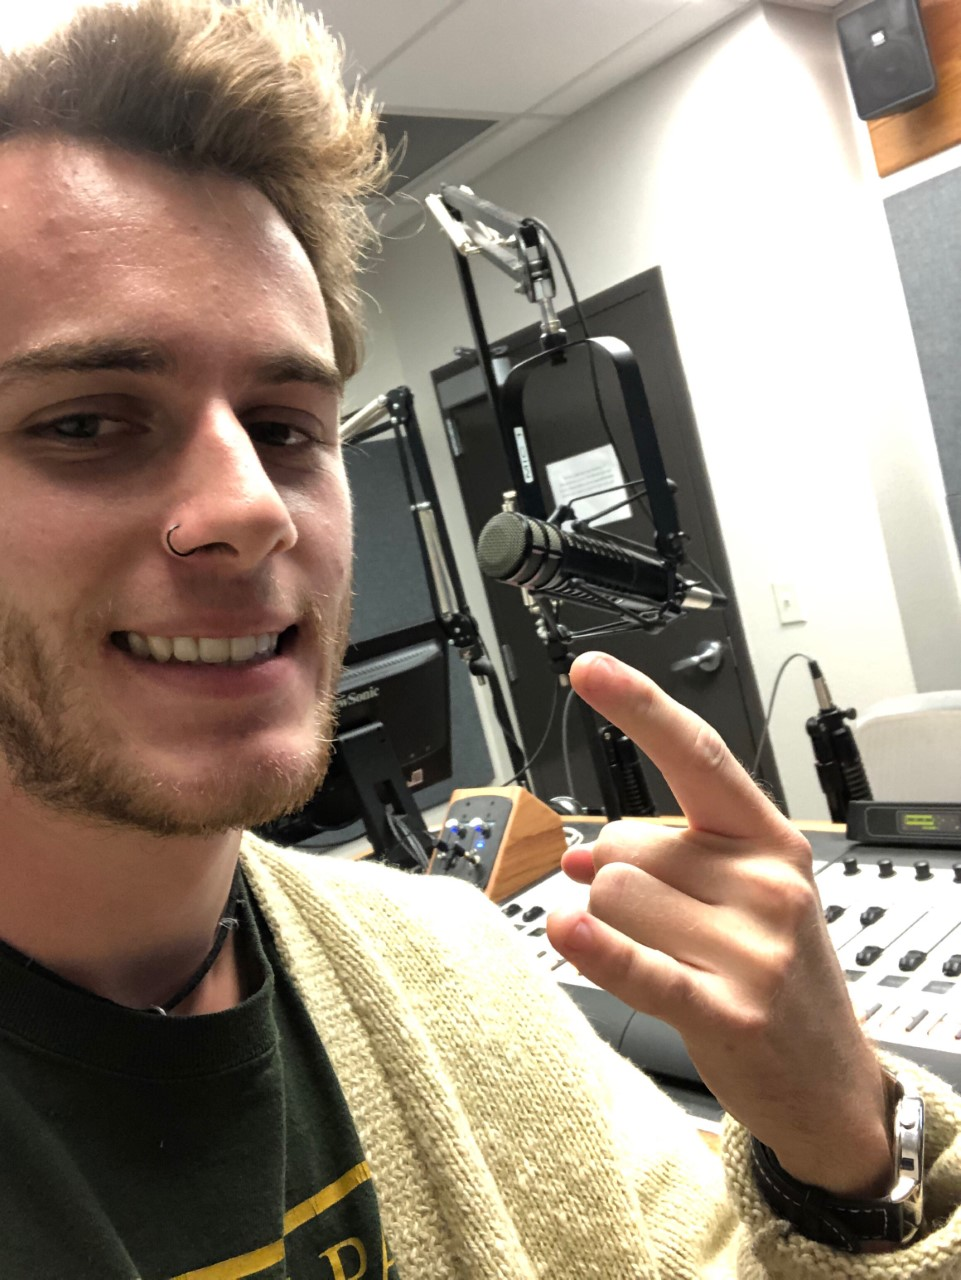 A photo of Dylan Holland's face with a radio studio as the background.